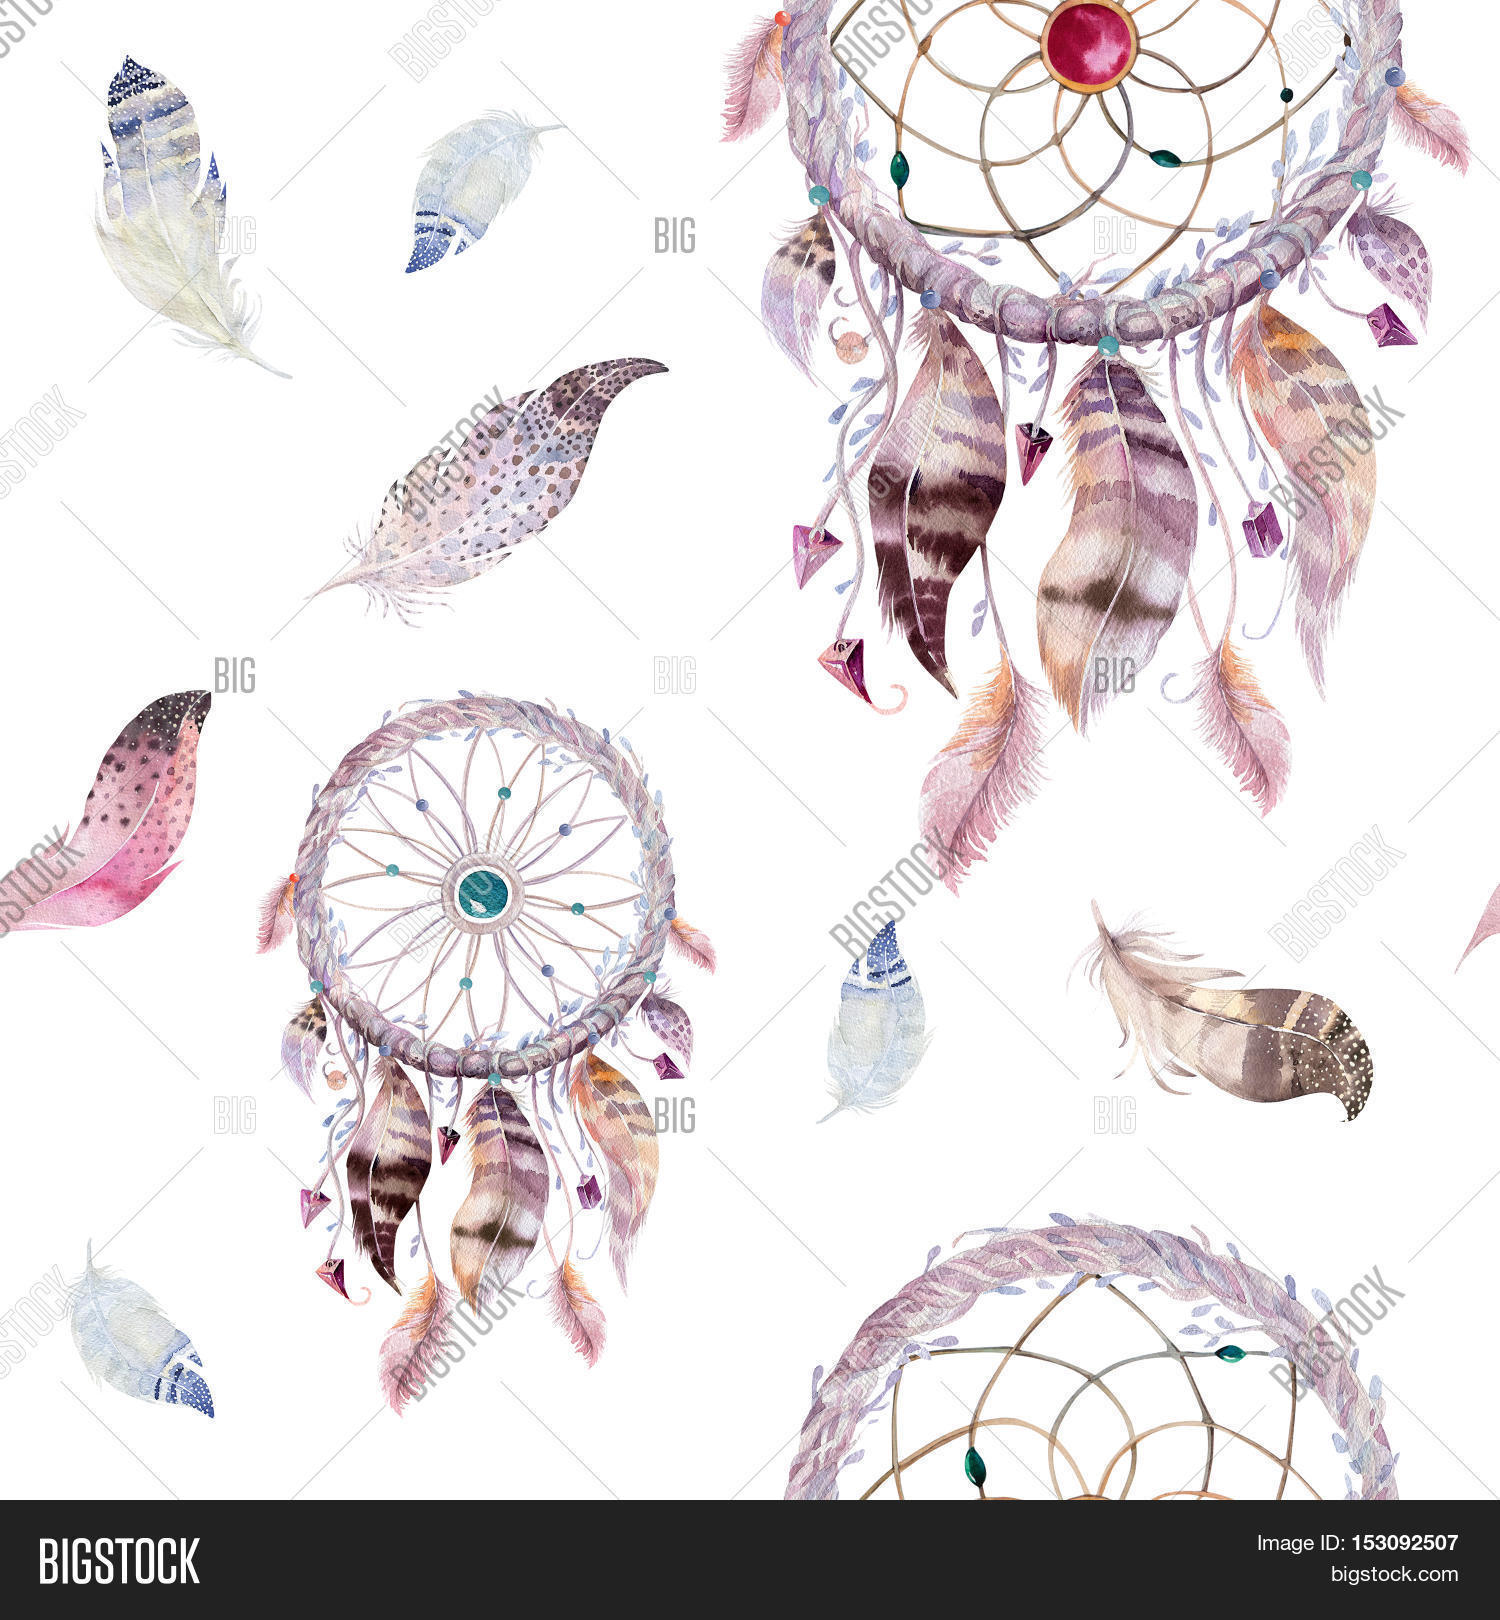 Dreamcatcher Feather Image Photo Trial Bigstock 1500x1620